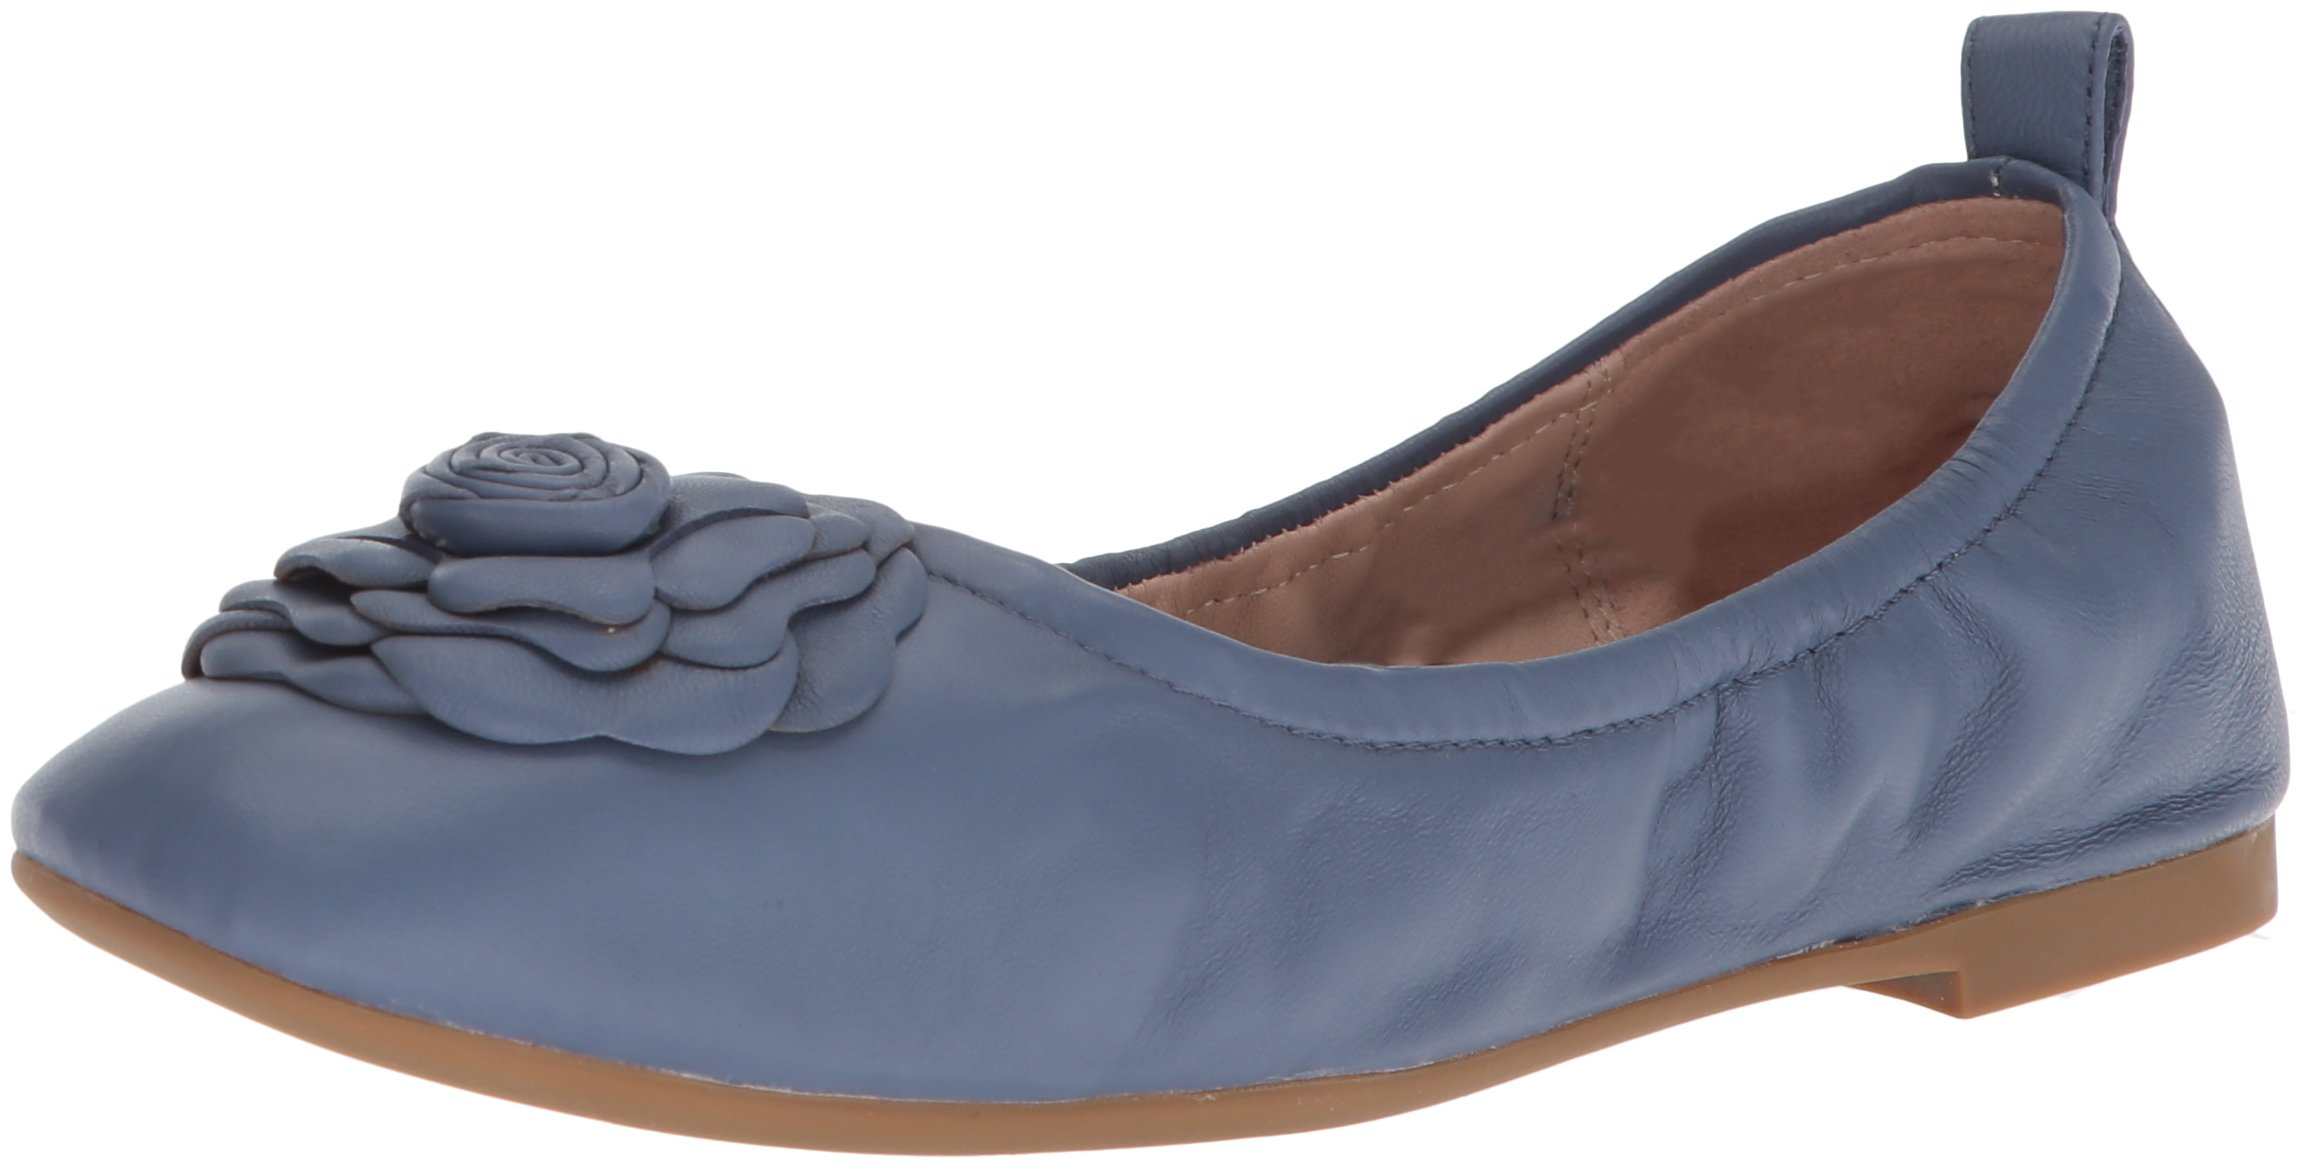 Taryn Rose Women's Rosalyn Sheep Nappa Ballet Flat, Denim, 8 M M US